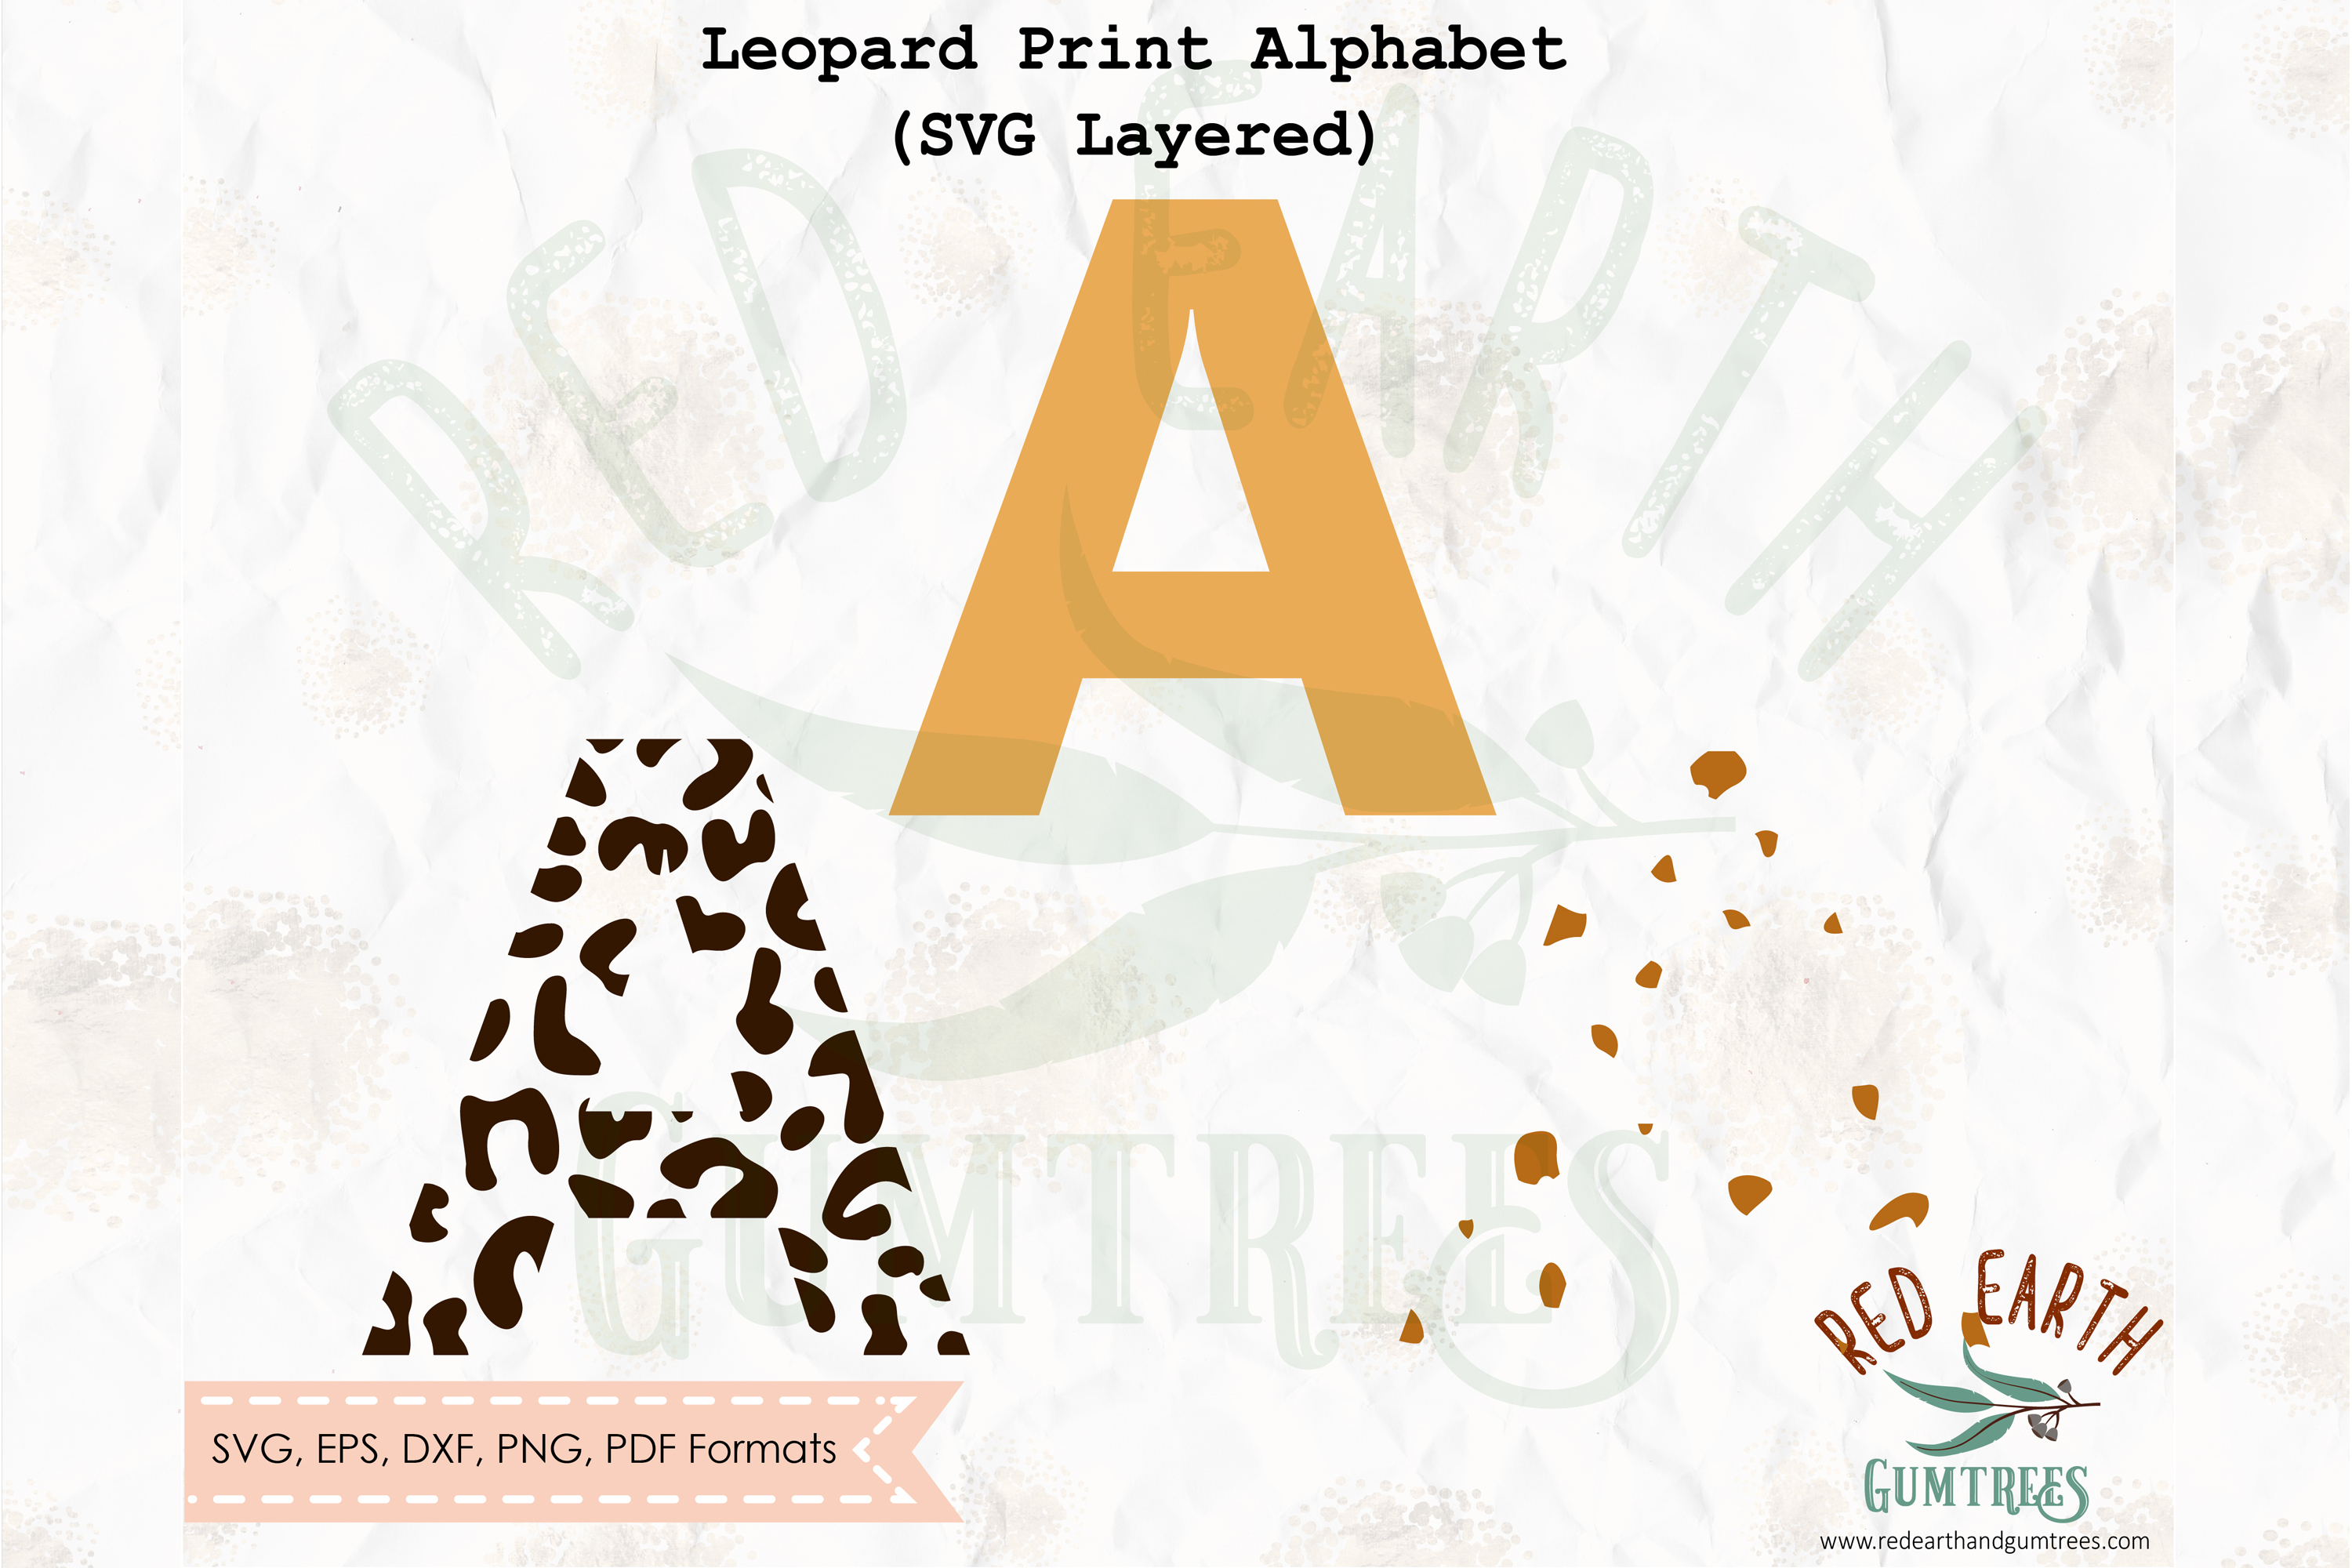 Download Free Leopard Print Letters Graphic By Redearth And Gumtrees for Cricut Explore, Silhouette and other cutting machines.